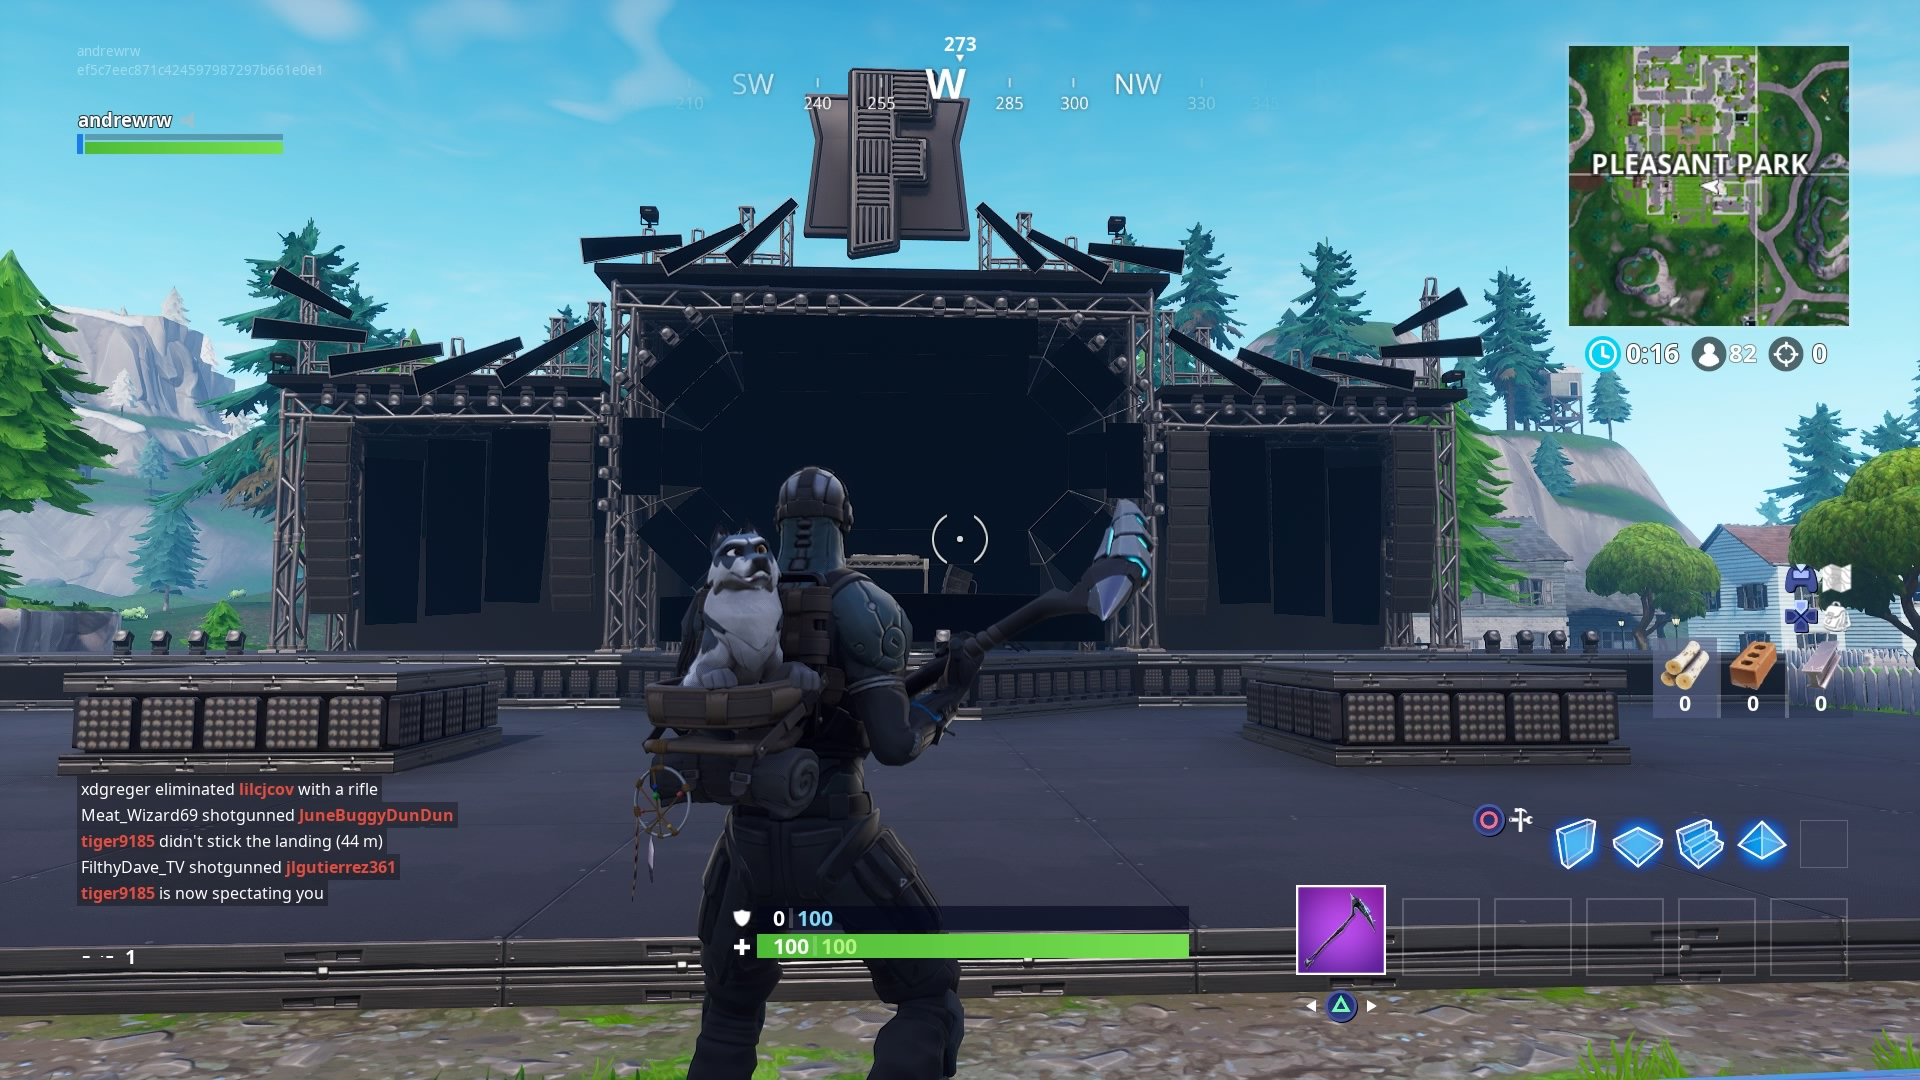 a before and after of the marshmello stage construction - pleasant park fortnite